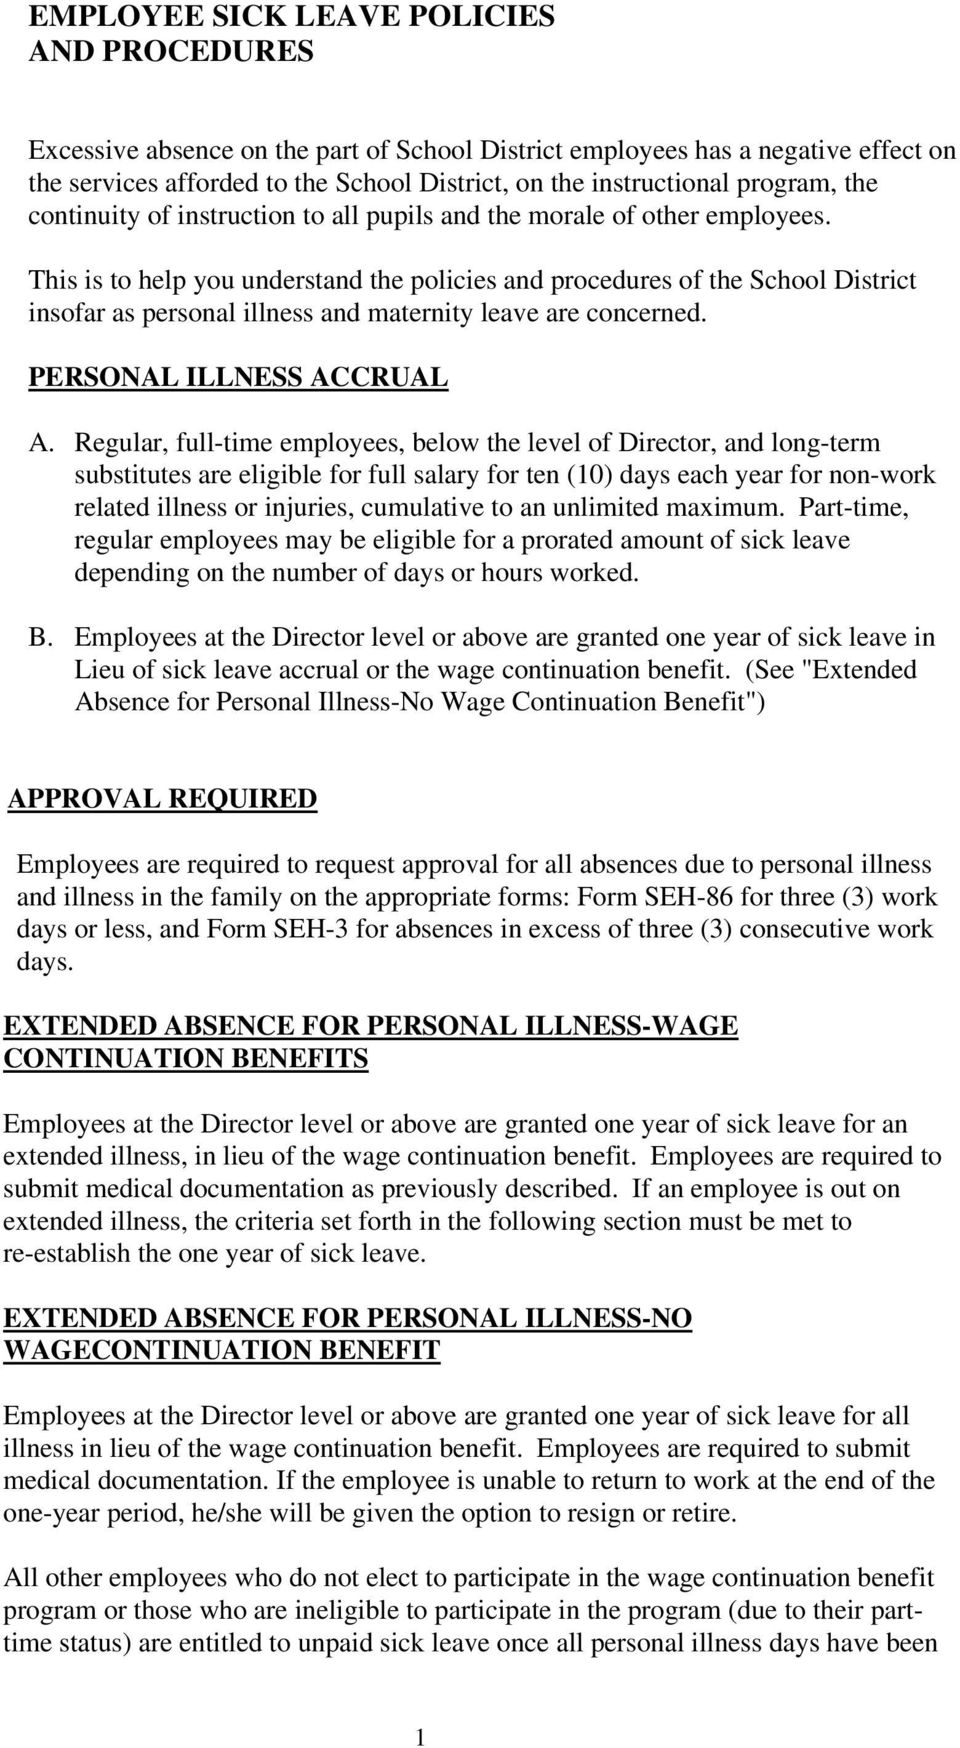 This is to help you understand the policies and procedures of the School District insofar as personal illness and maternity leave are concerned. PERSONAL ILLNESS ACCRUAL A.